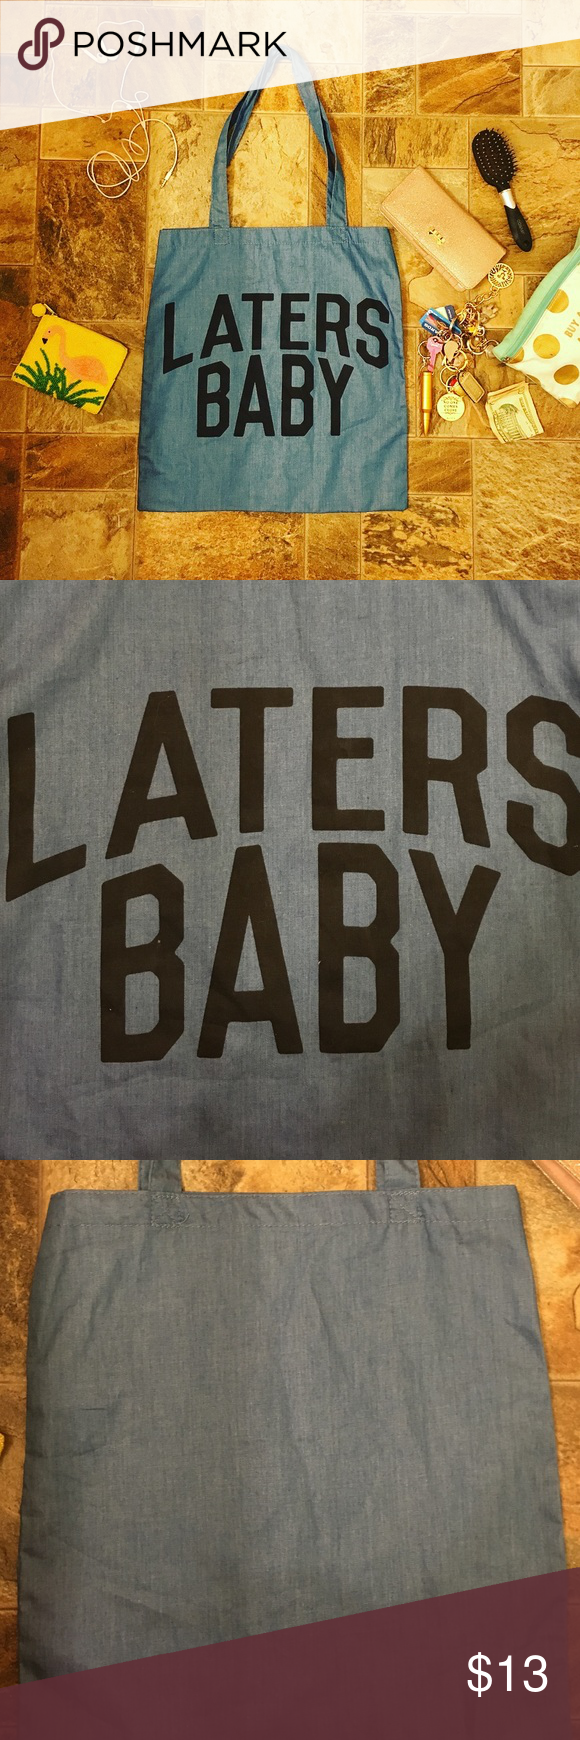 """50 Shades of Grey """"Laters Baby"""" Tote Bag Super cute powder navy blue tote bag emblazoned with """"LATERS BABY"""" à la 50 Shades of Grey. Brand new without tags, never used. 🚫NOT Brandy Melville🚫 Listed for visibility 😘 Brandy Melville Bags Shoulder Bags"""